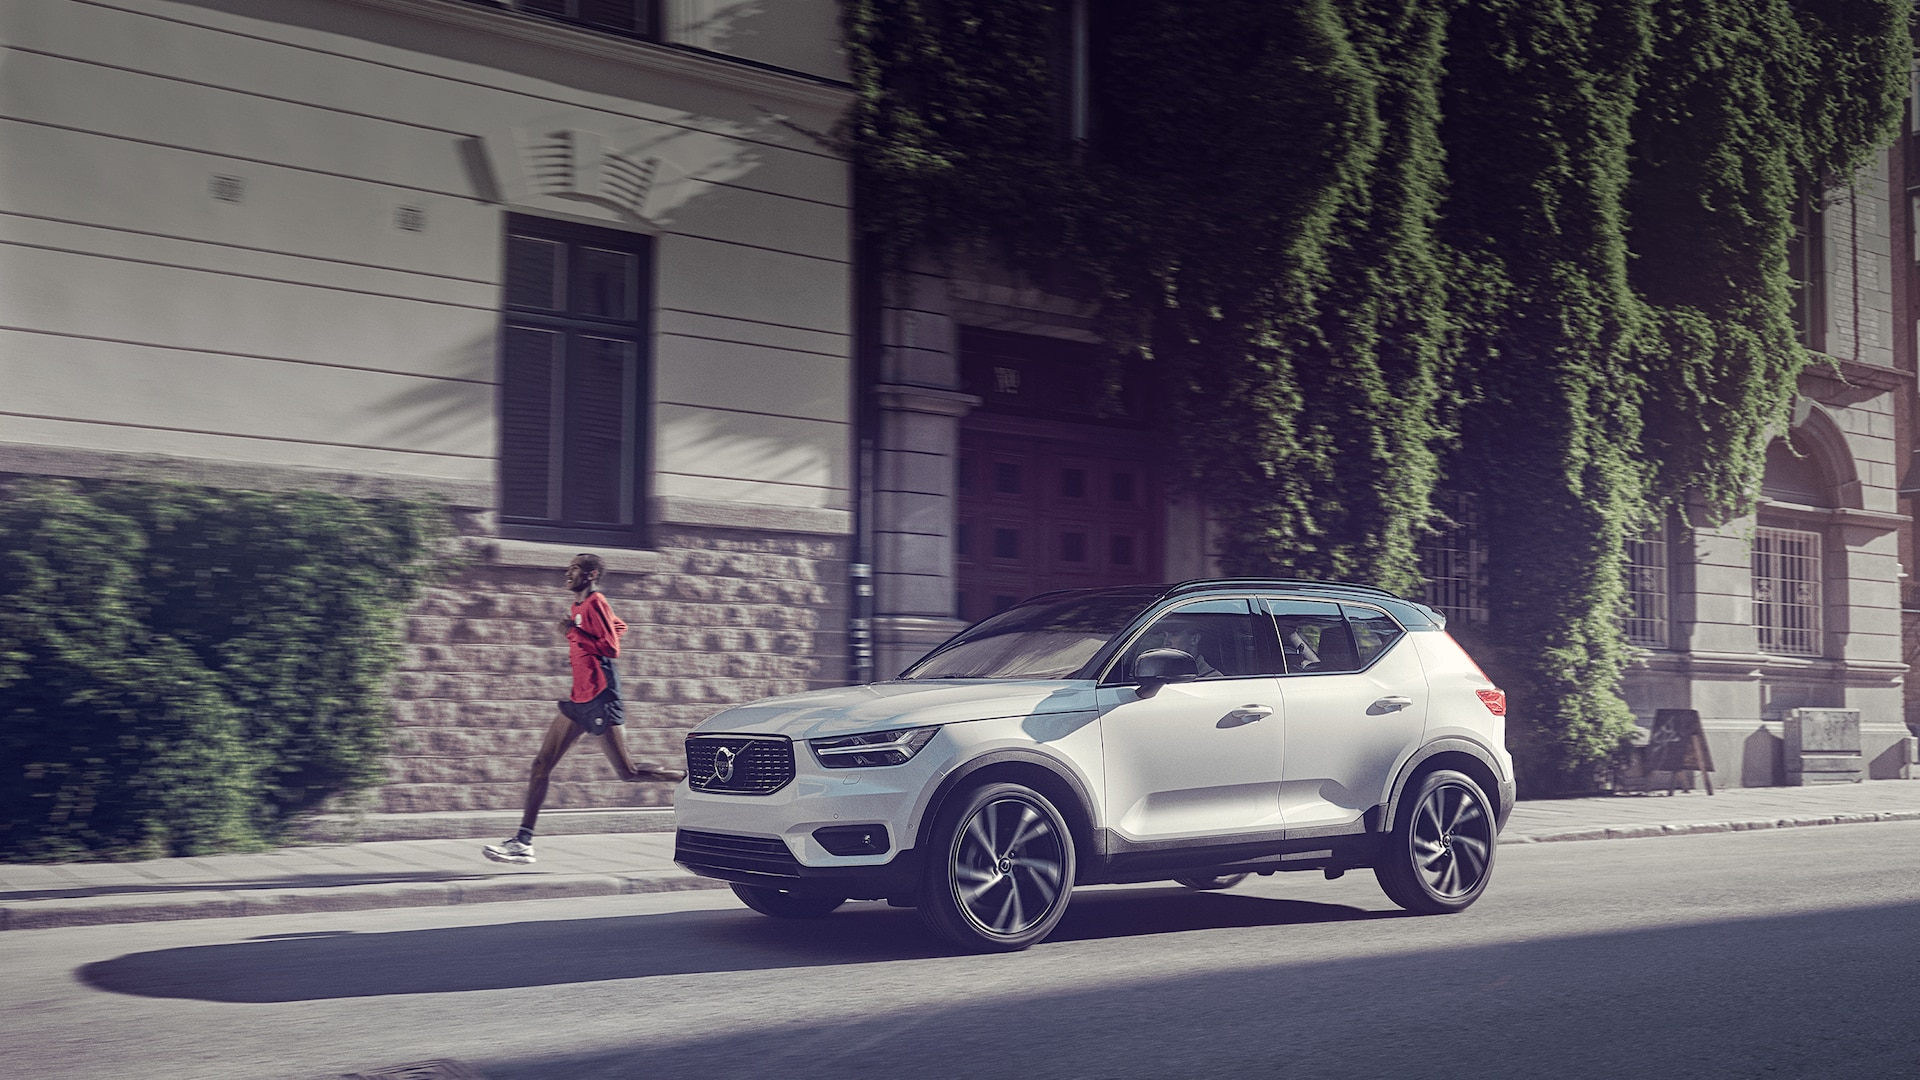 A white Volvo XC40 SUV is passing a jogger in a downtown street.